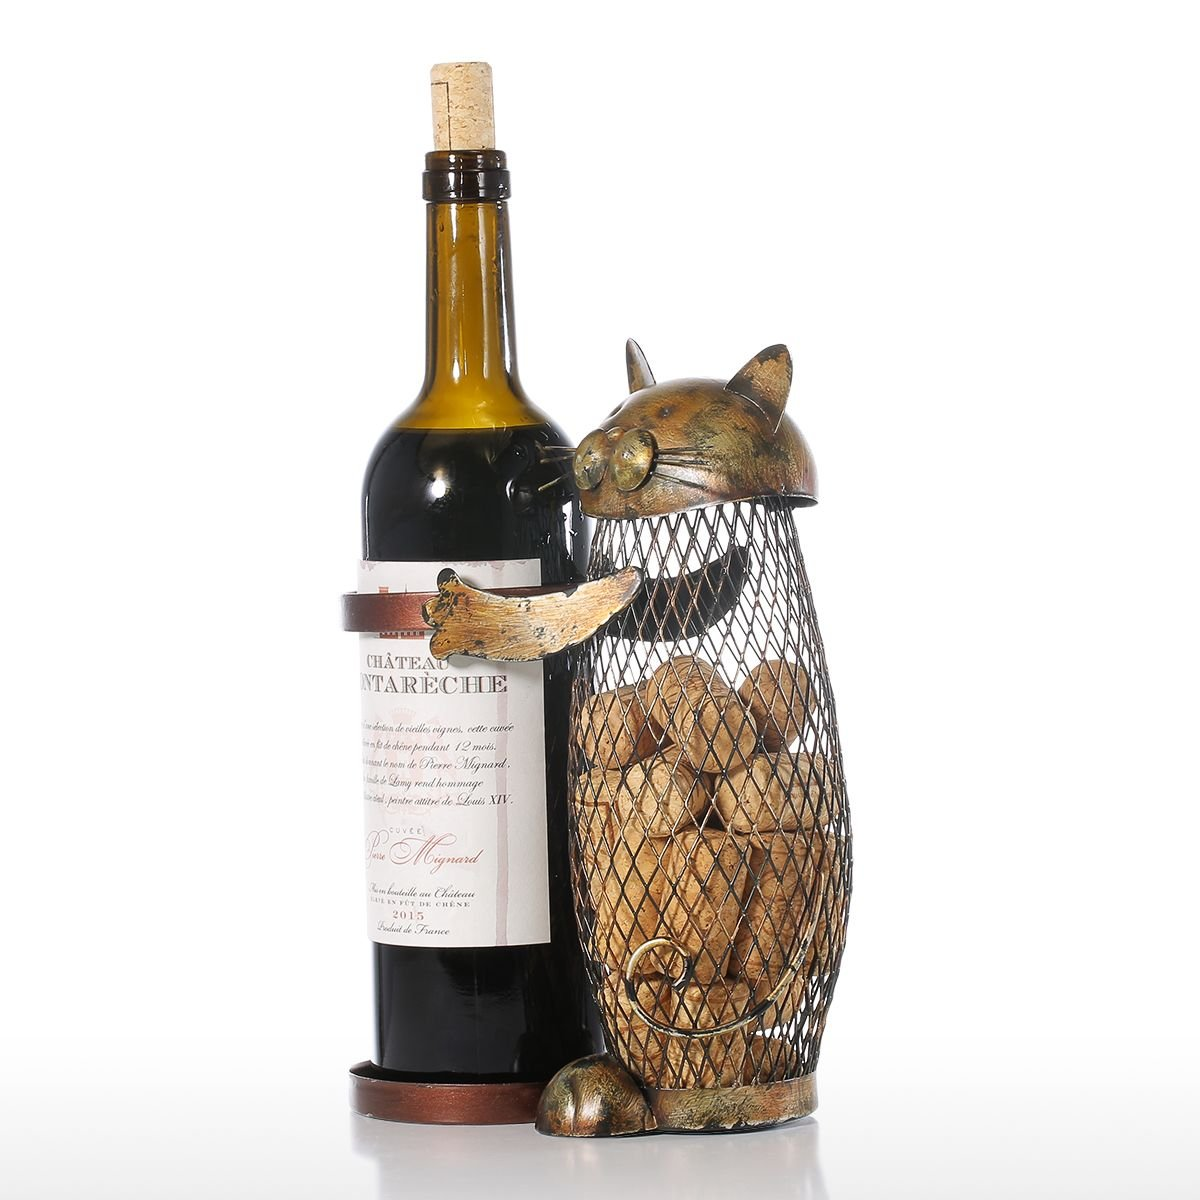 Tooarts Cat Wine Holder Cork Metal Wine Barrel Cork Storage Cage Table Cork Container Ornament by Tooarts (Image #4)